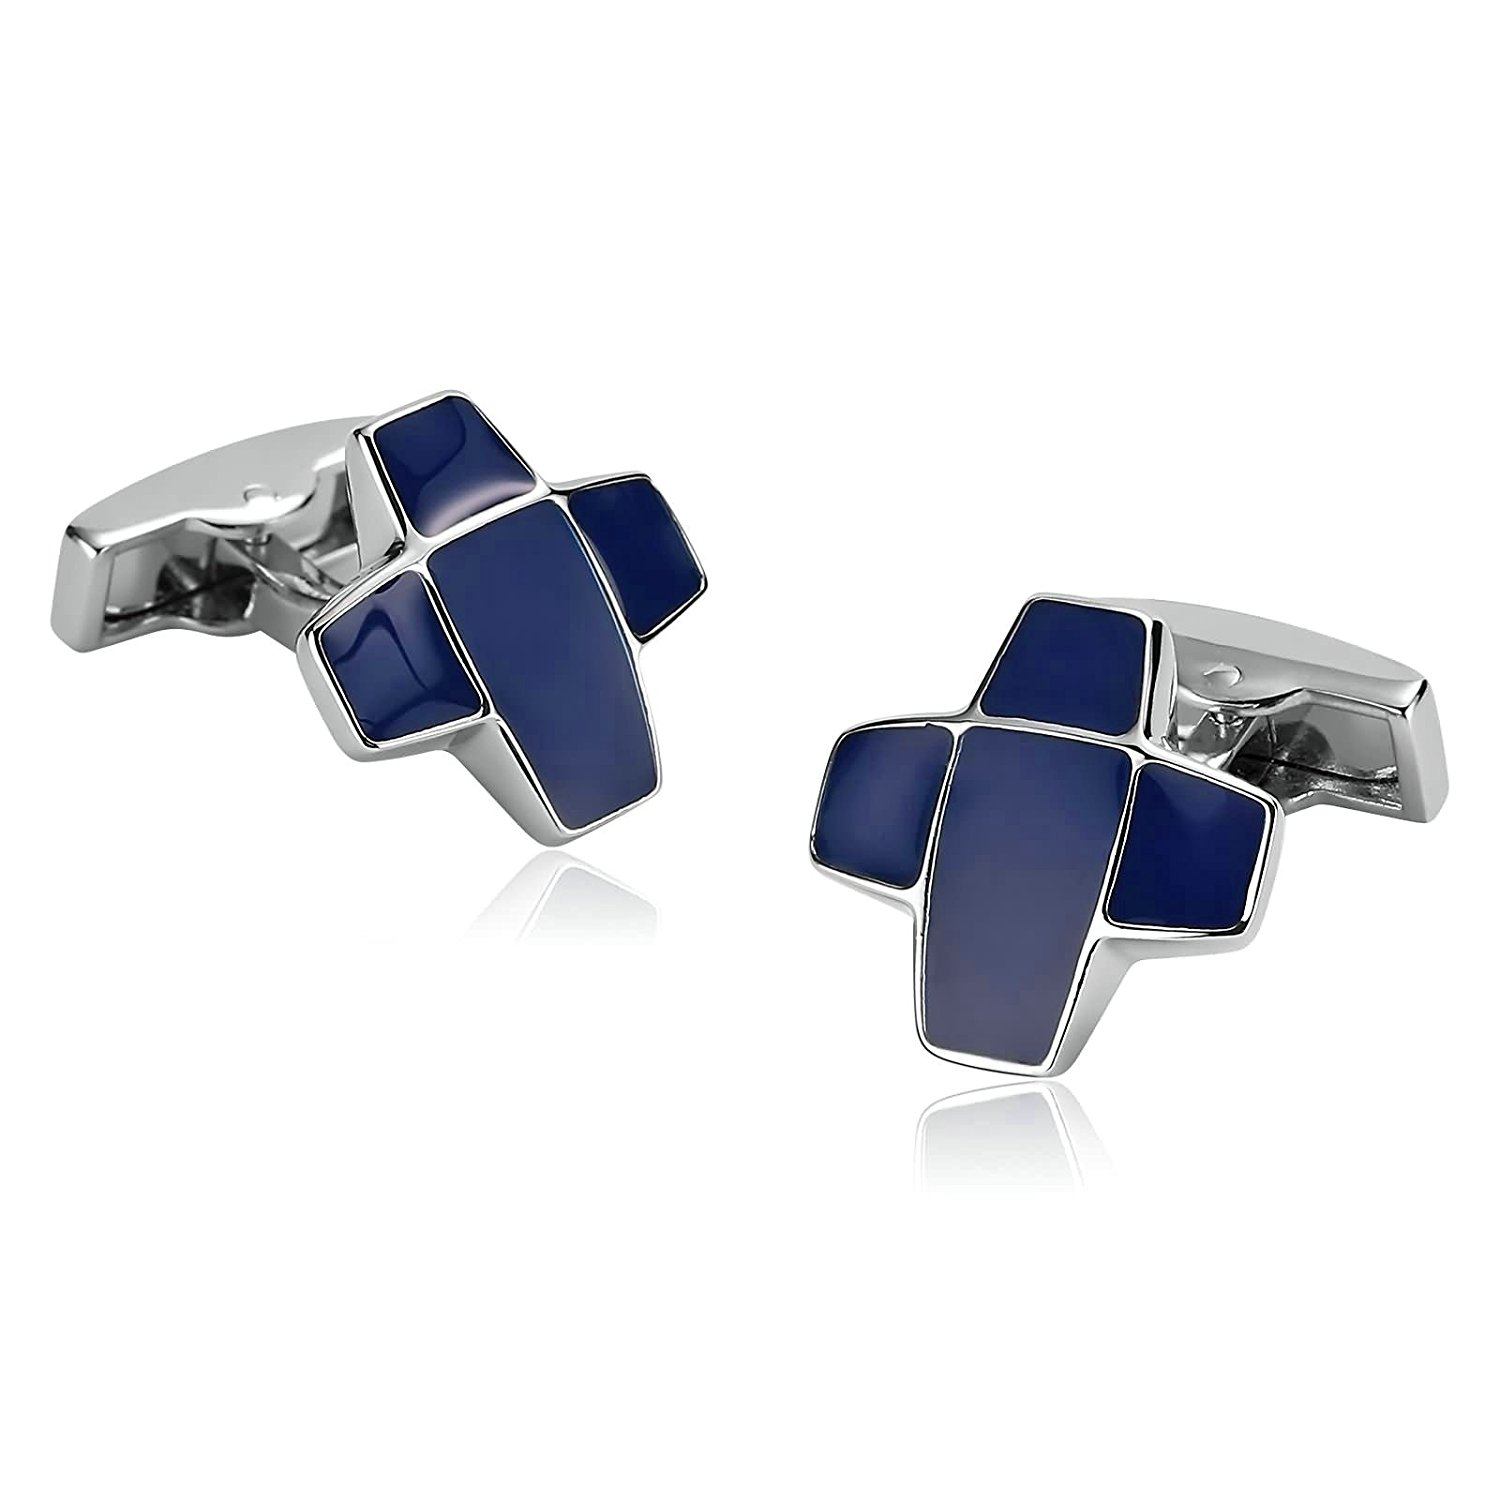 Aooaz [4 Styles] Men Stainless Steel Cufflinks 2PCS, Novelty Shirt Cufflinks Suit Business, With Gift Box